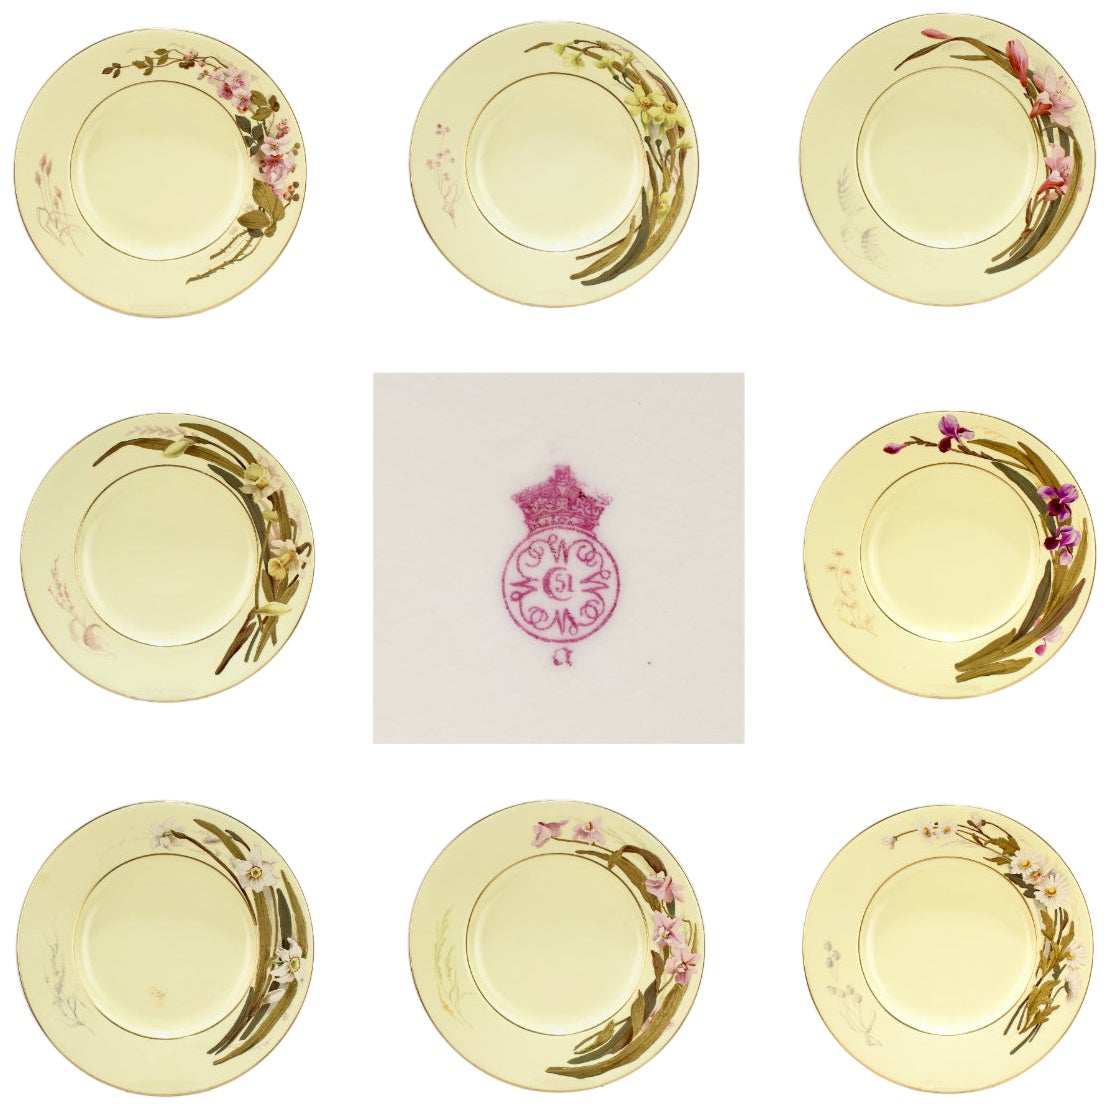 Set of 8 Antique Worcester Porcelain Cabinet Plates with Enamel Flowers